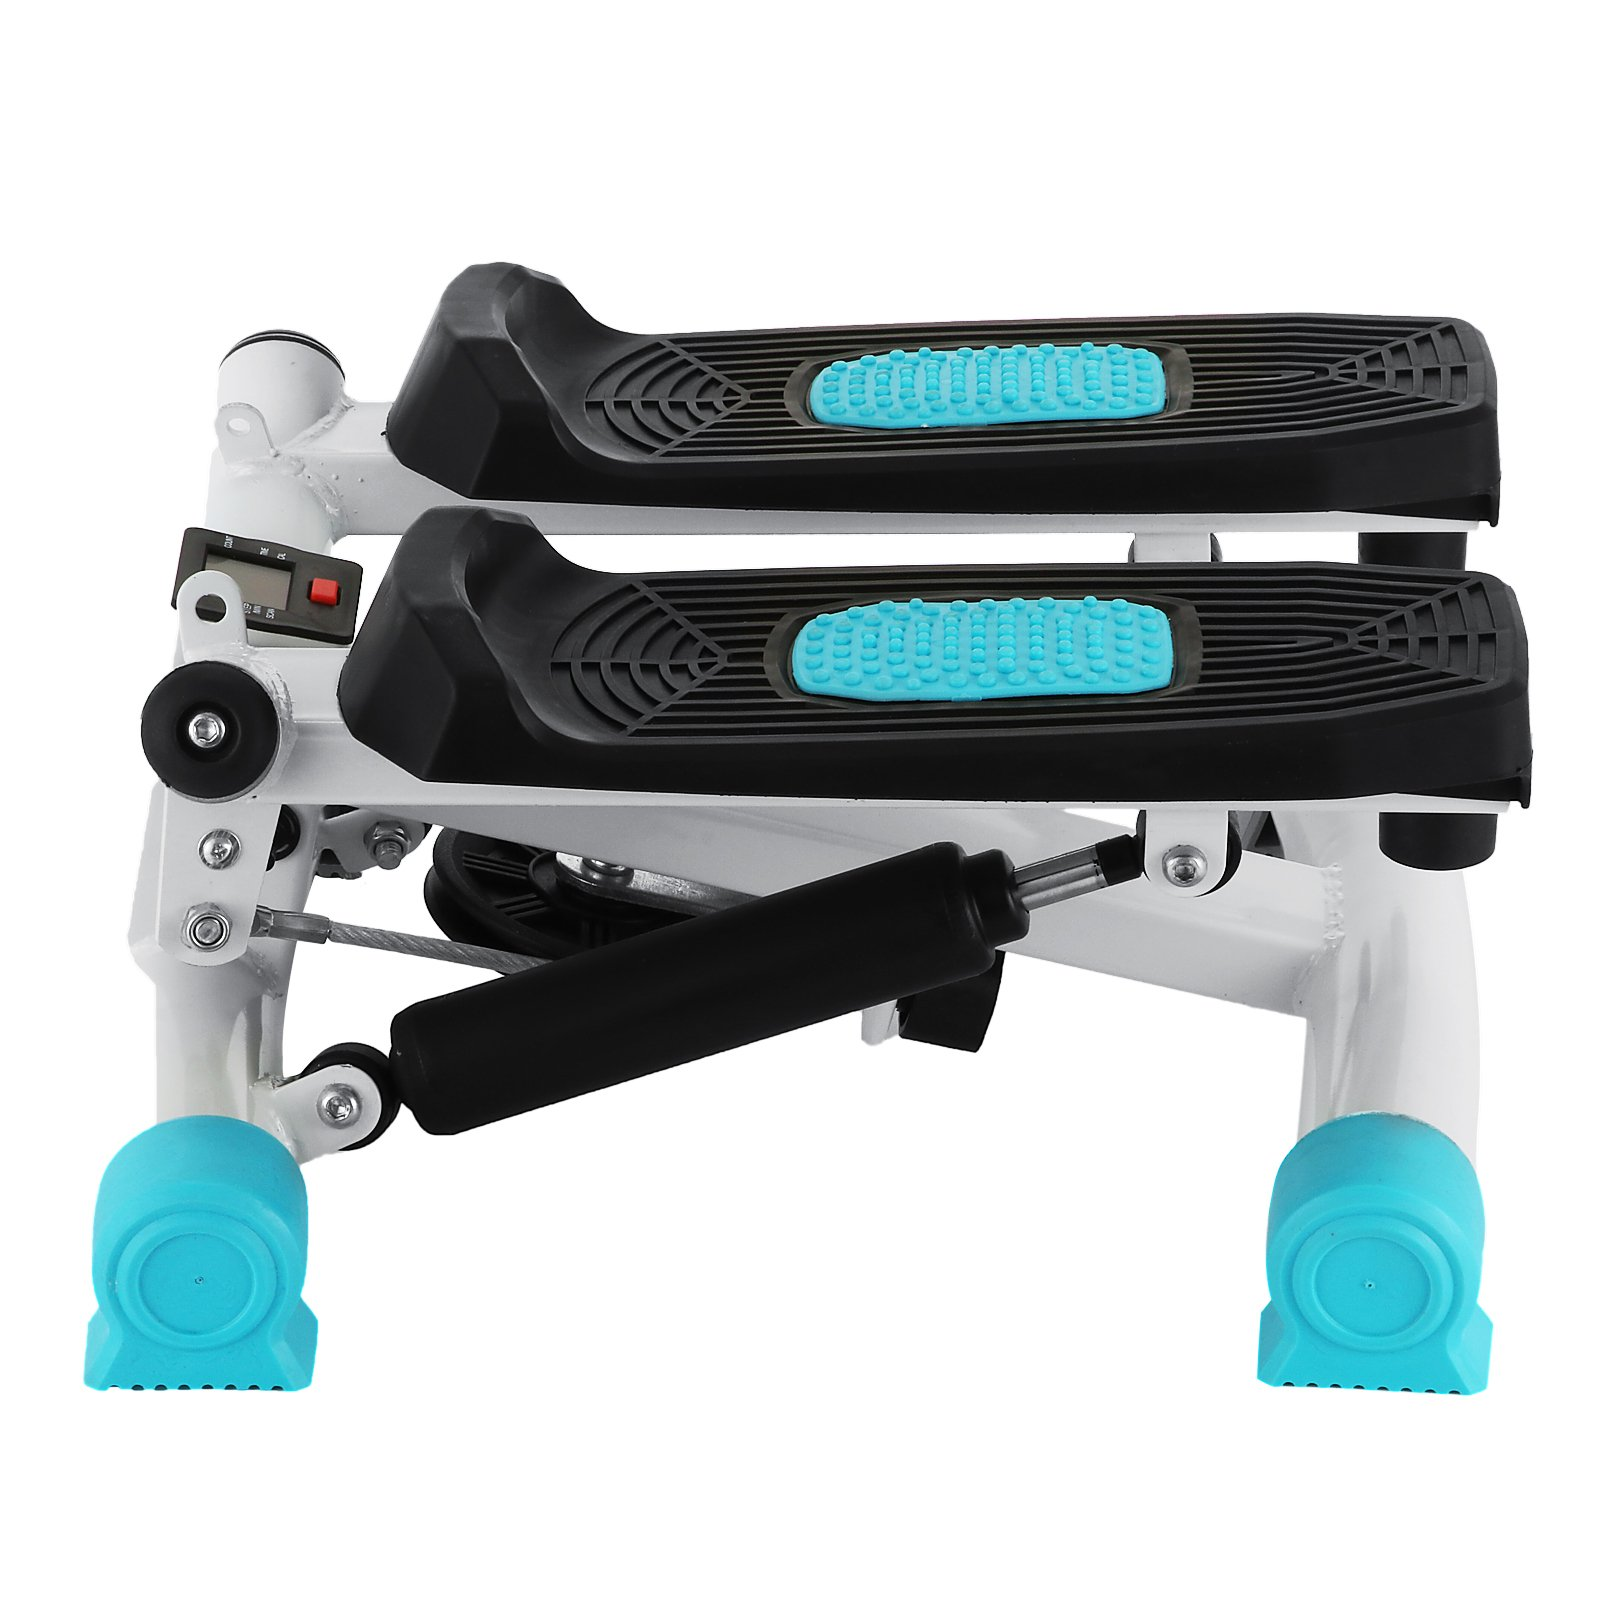 Happybuy Exercise Mini Stepper 220lbs/100kg Mini Stepper Exercise Equipment Monitor Mini Stepper Machine with Band for Exercise (Blue) by Happybuy (Image #4)